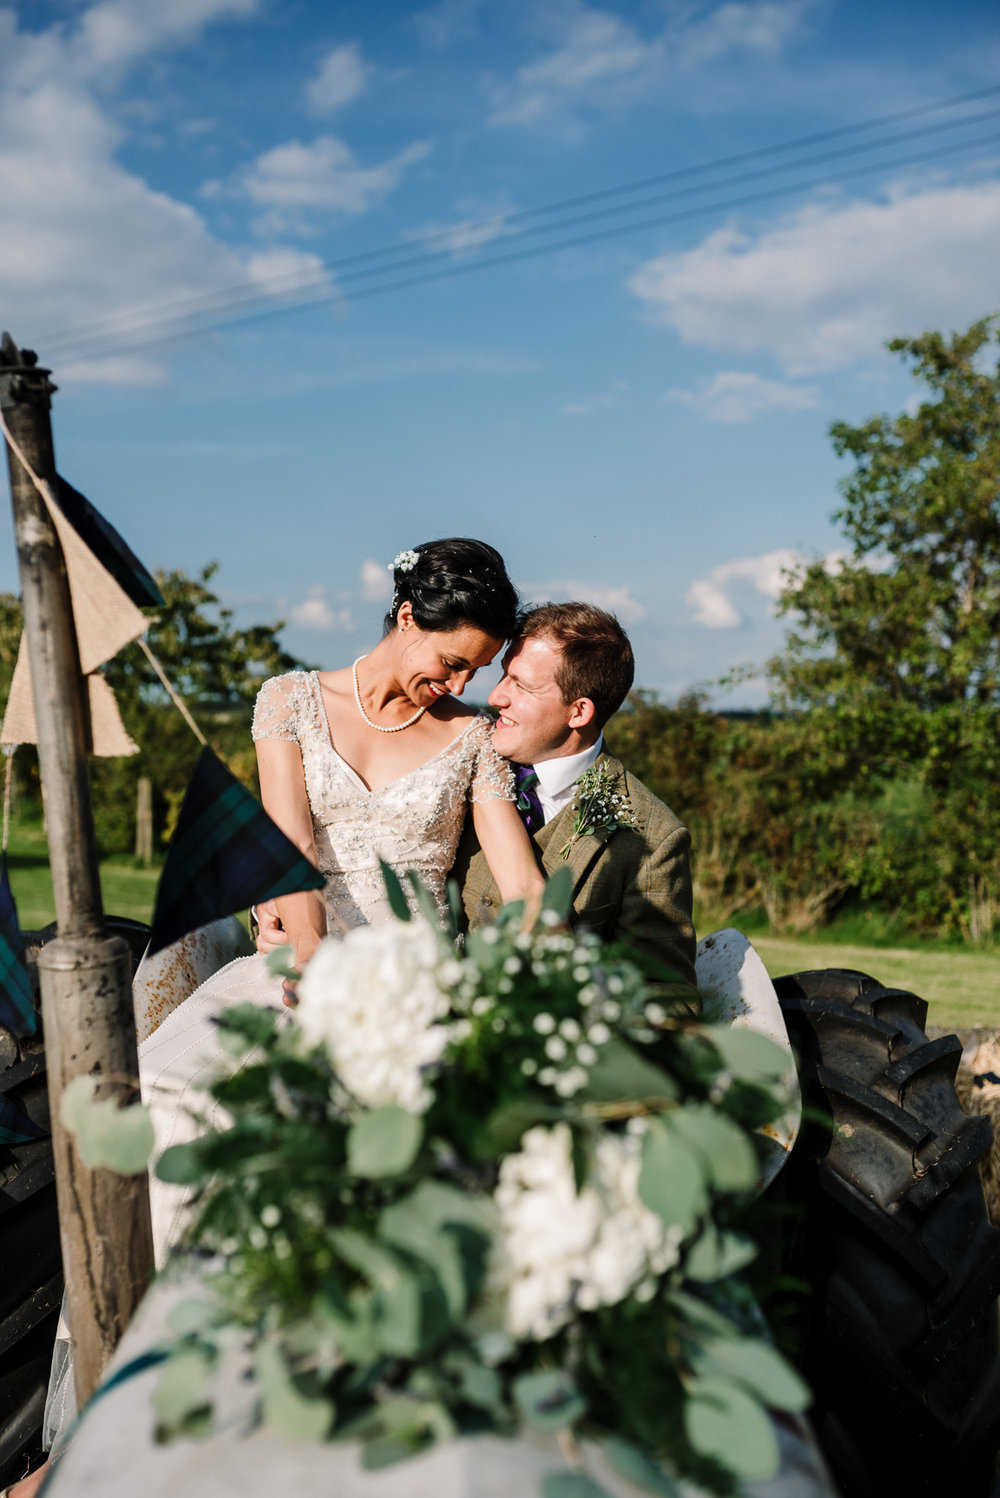 Portrait on the tractor. Farm wedding photography